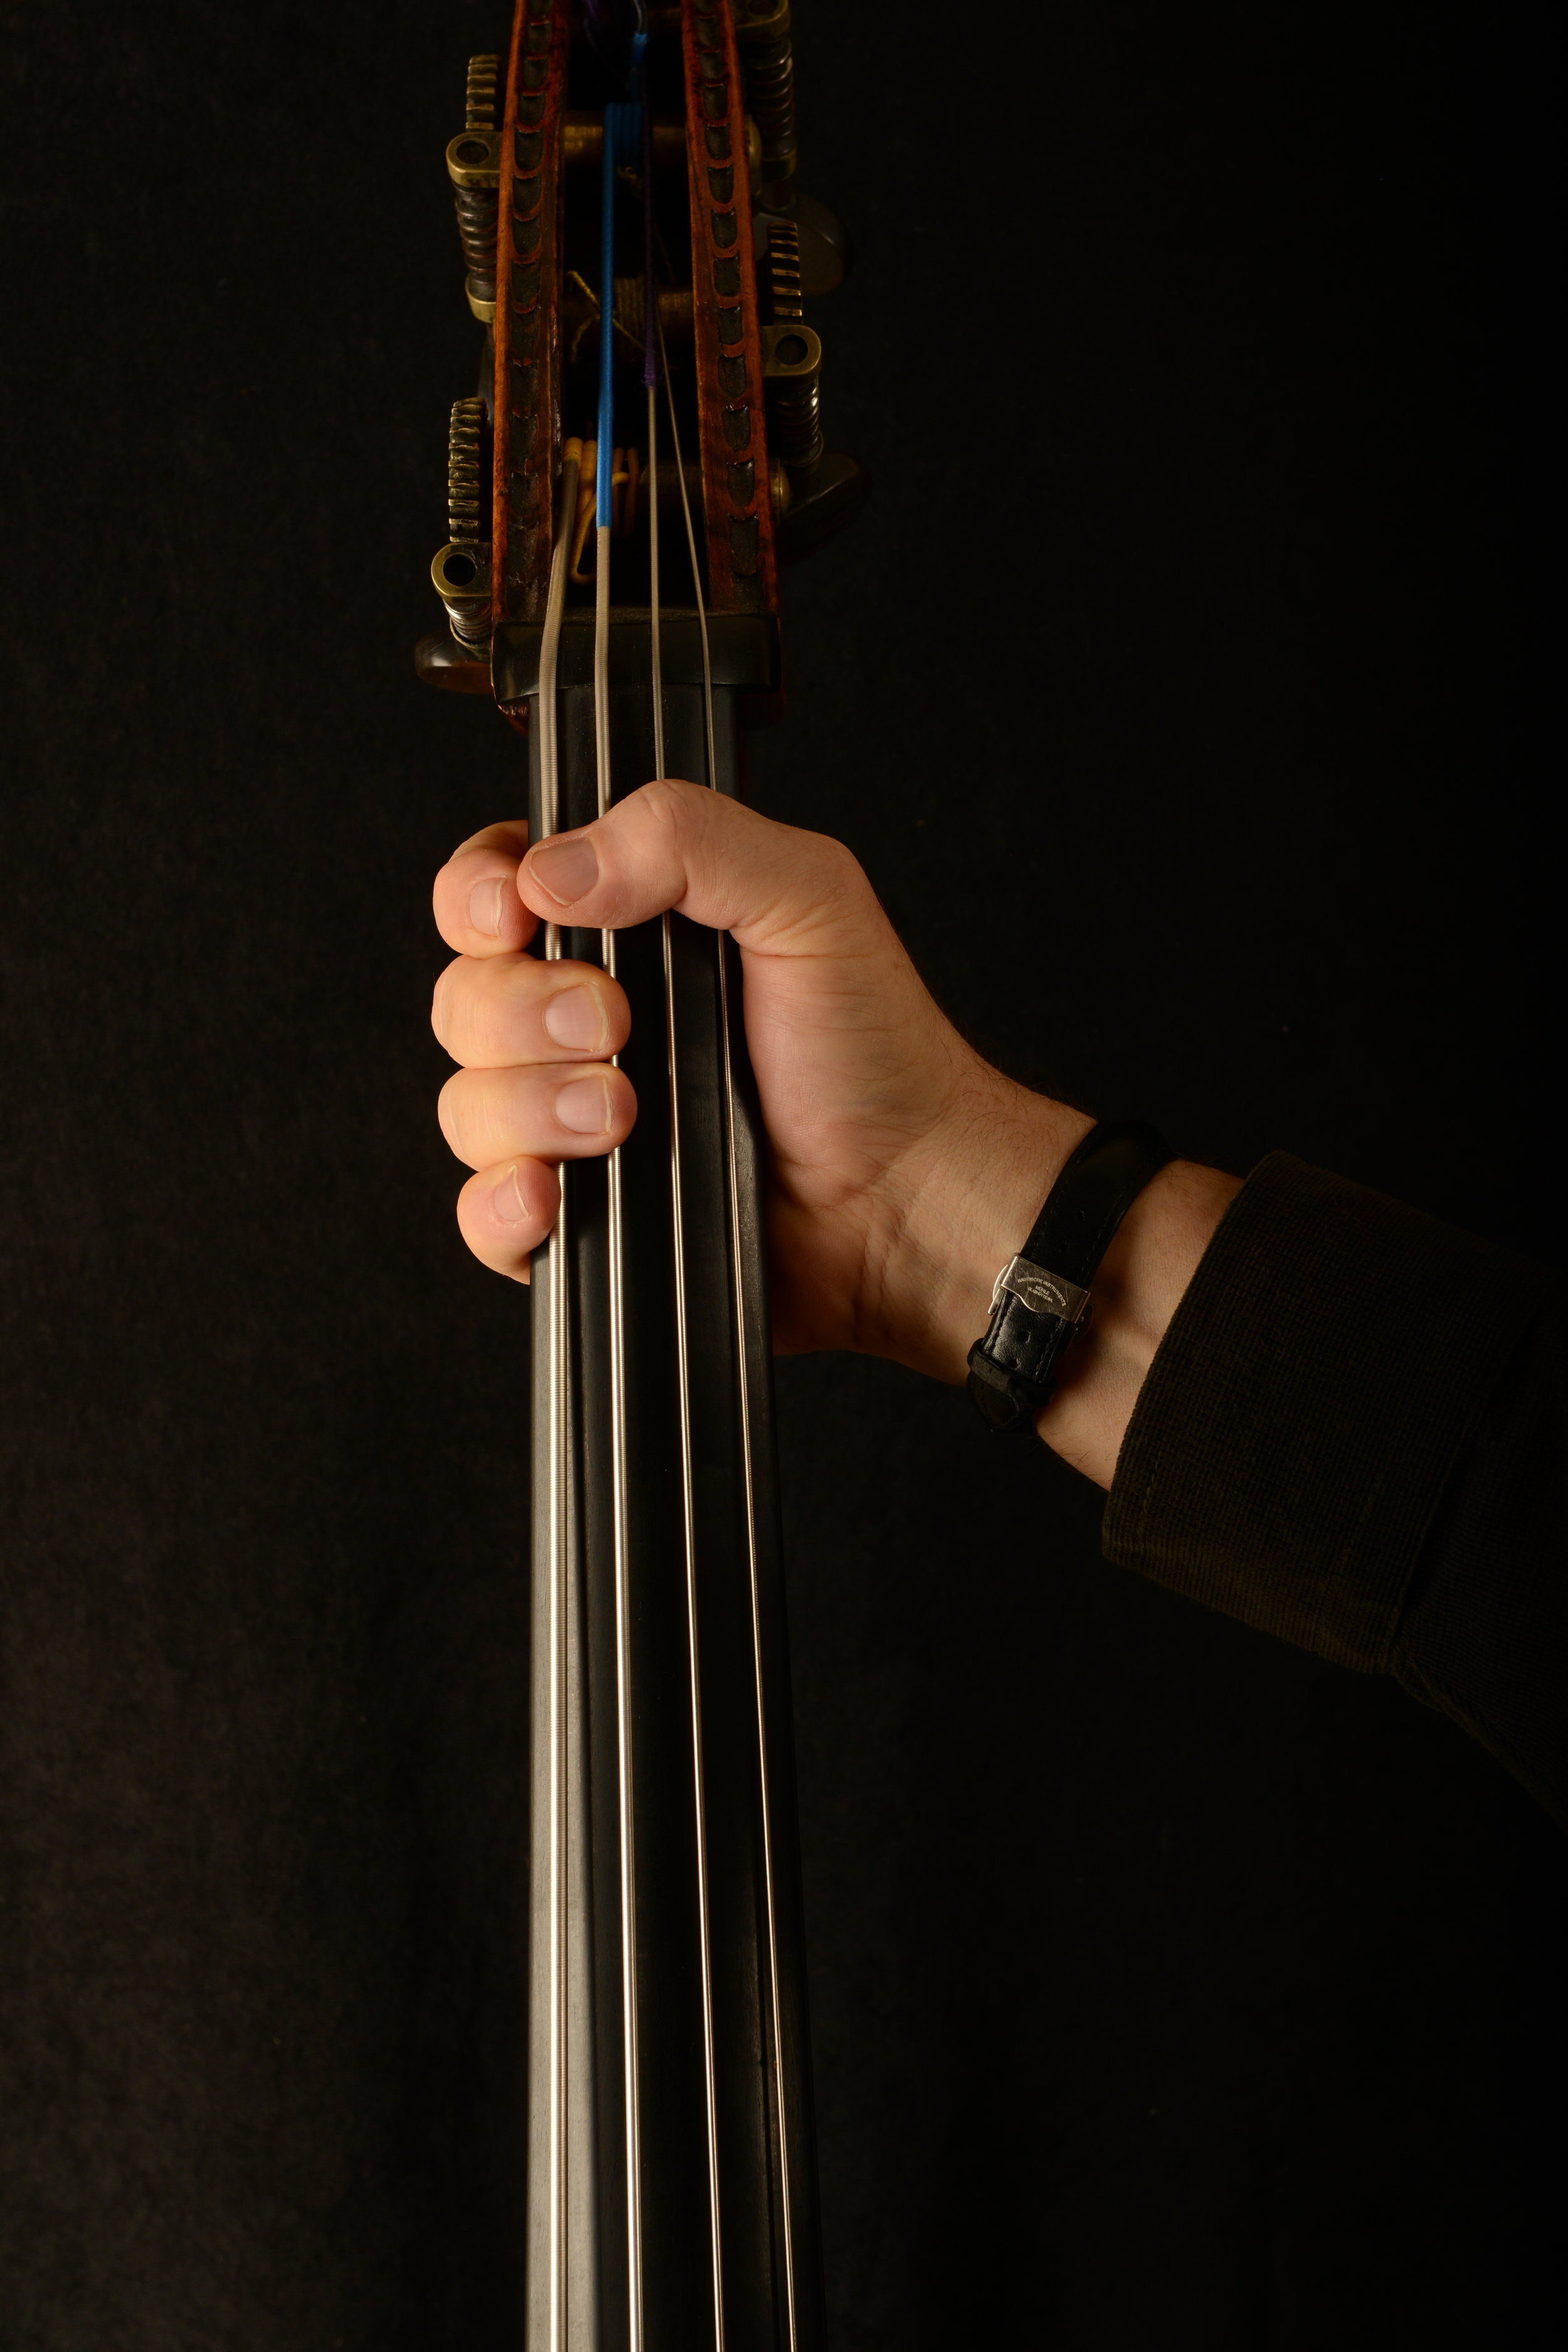 The Latest About the Bass in Fifths - by Silvio Dalla Torre